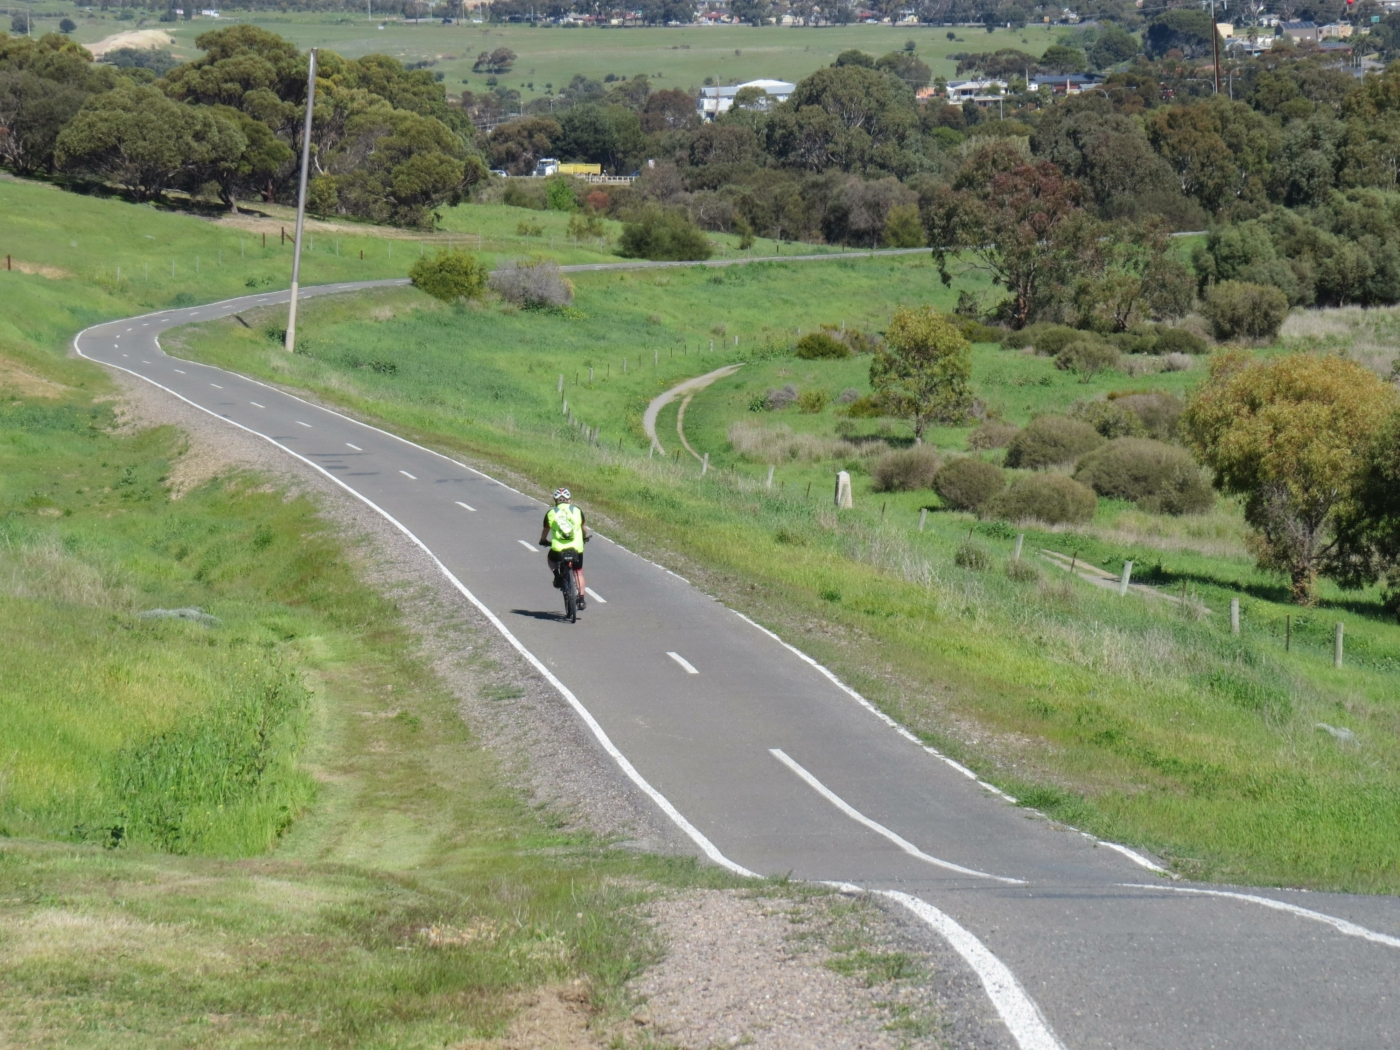 the approach to the Onkaparinga River 2020